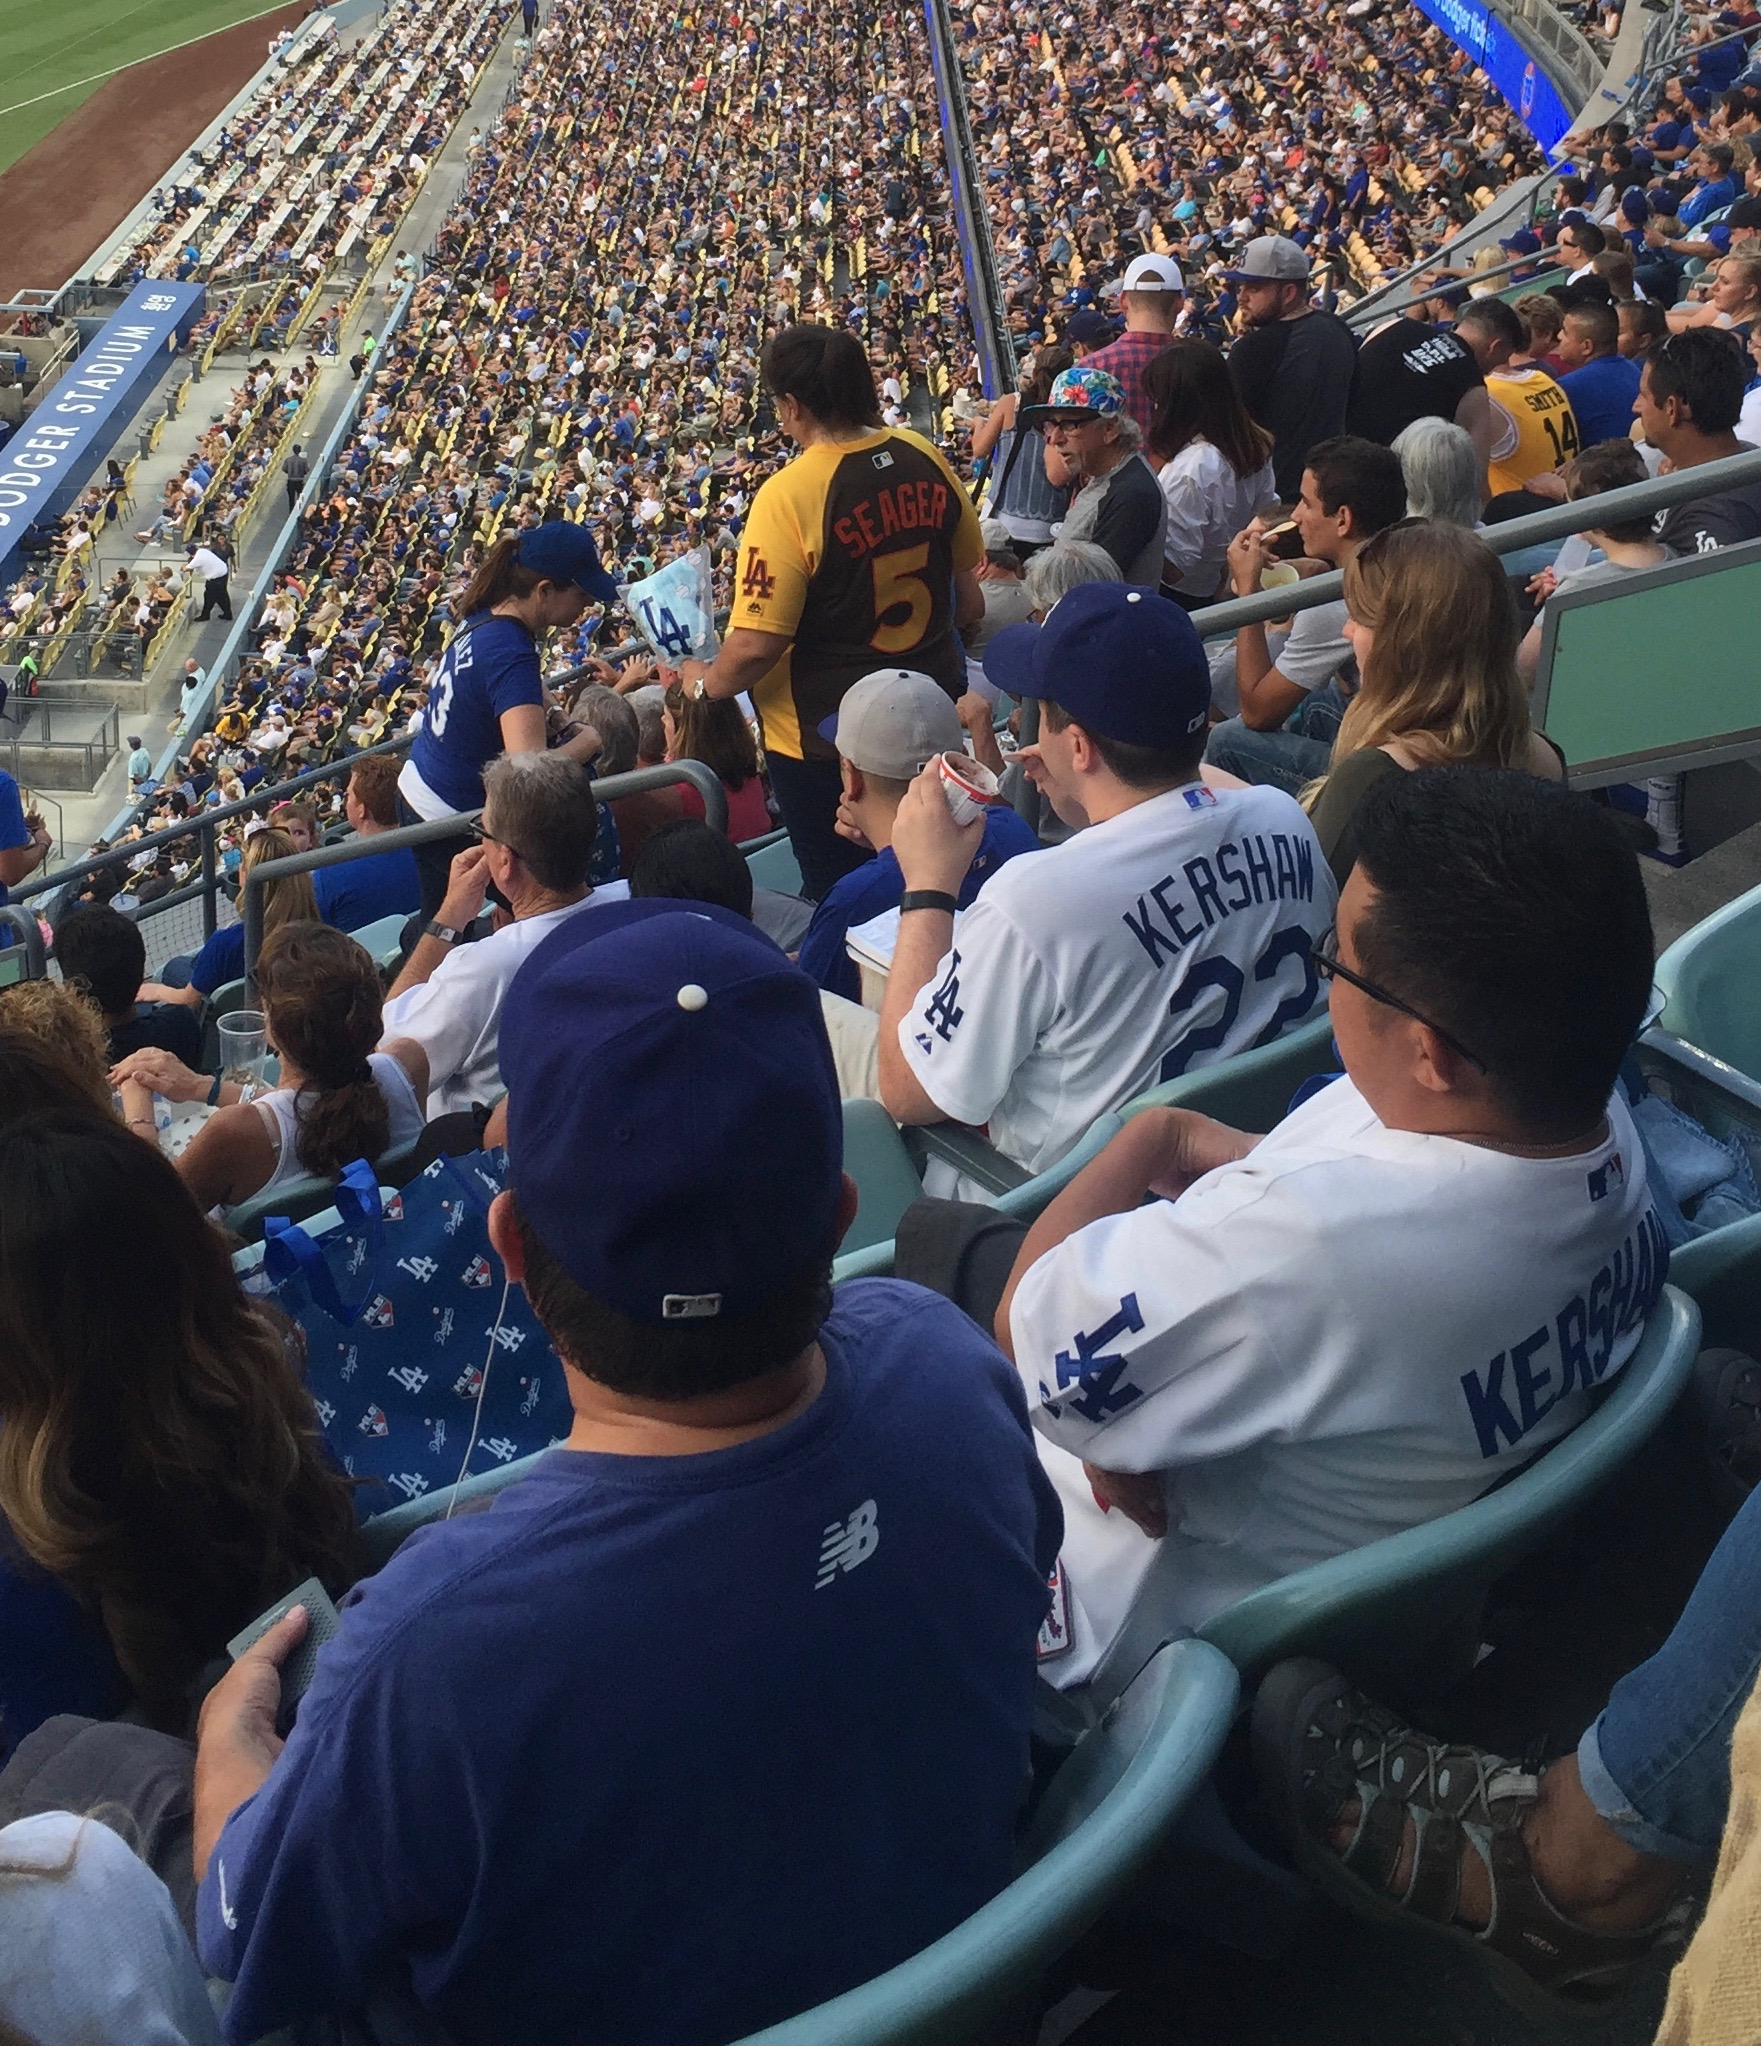 COREY SEAGER JERSEY 2